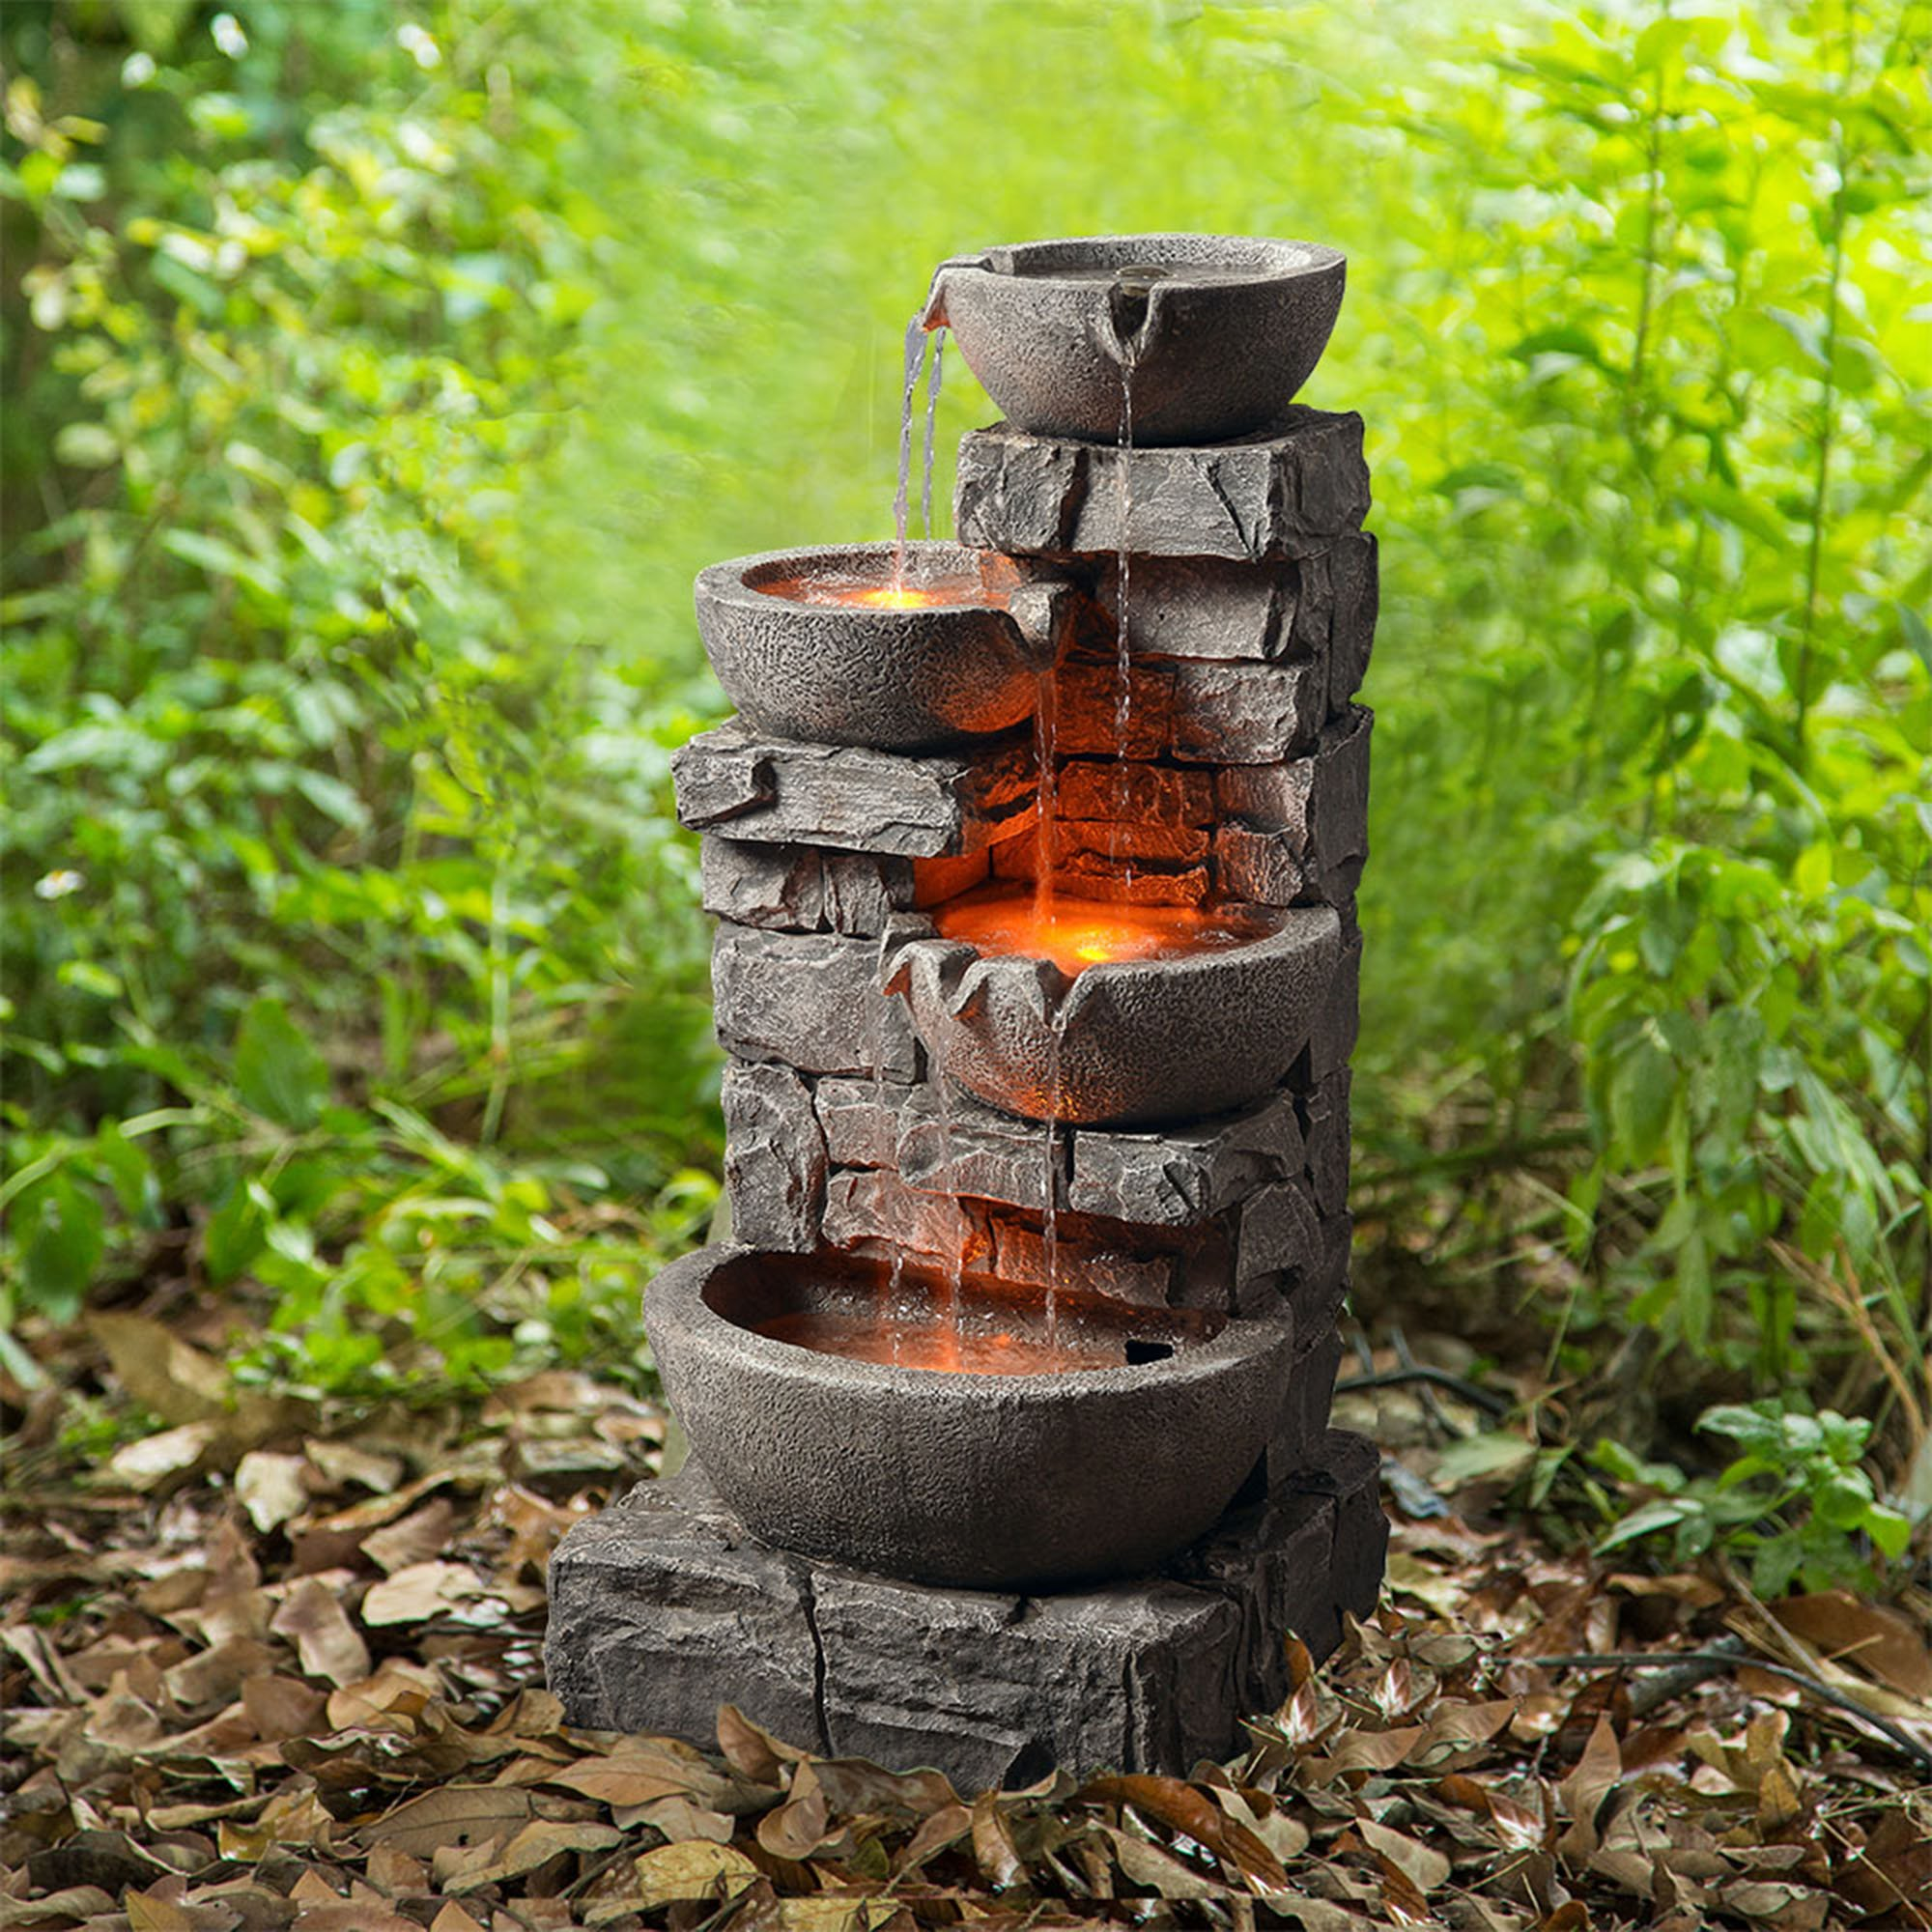 Peaktop 201601PT Outdoor Stacked Stone Tiered Bowls Fountain w/ LED Light